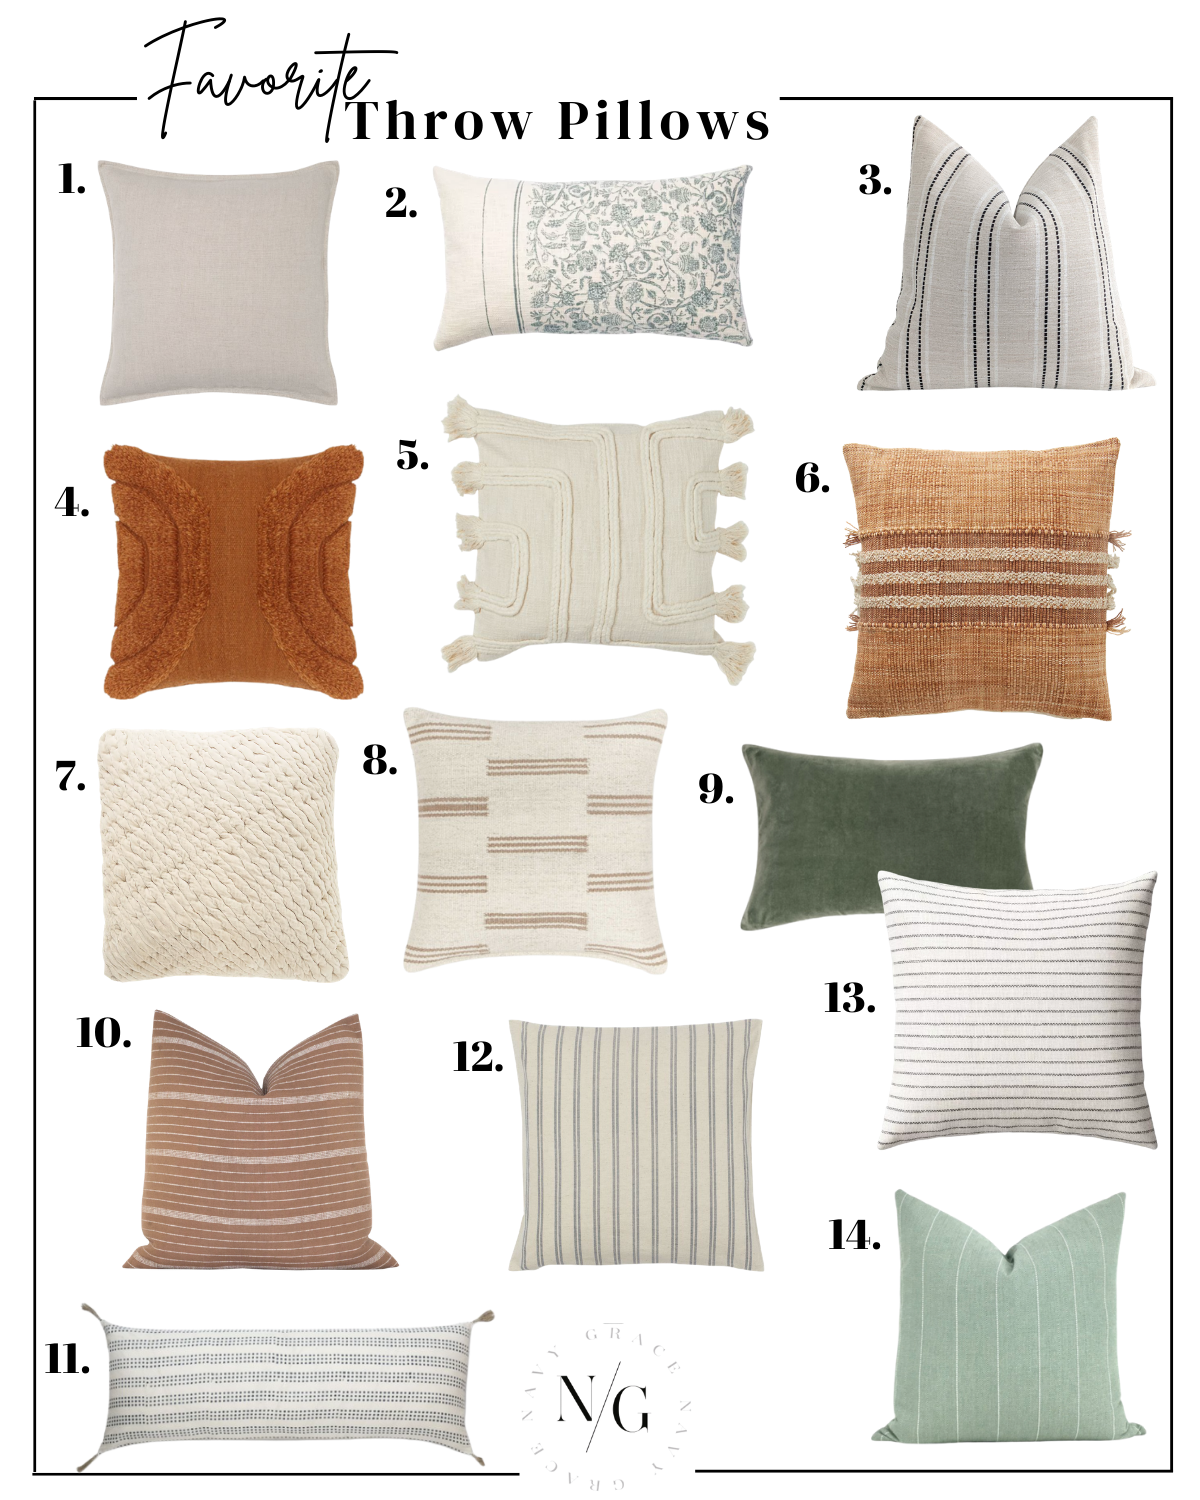 14 BEST THROW PILLOWS FOR THE SPRING SEASON